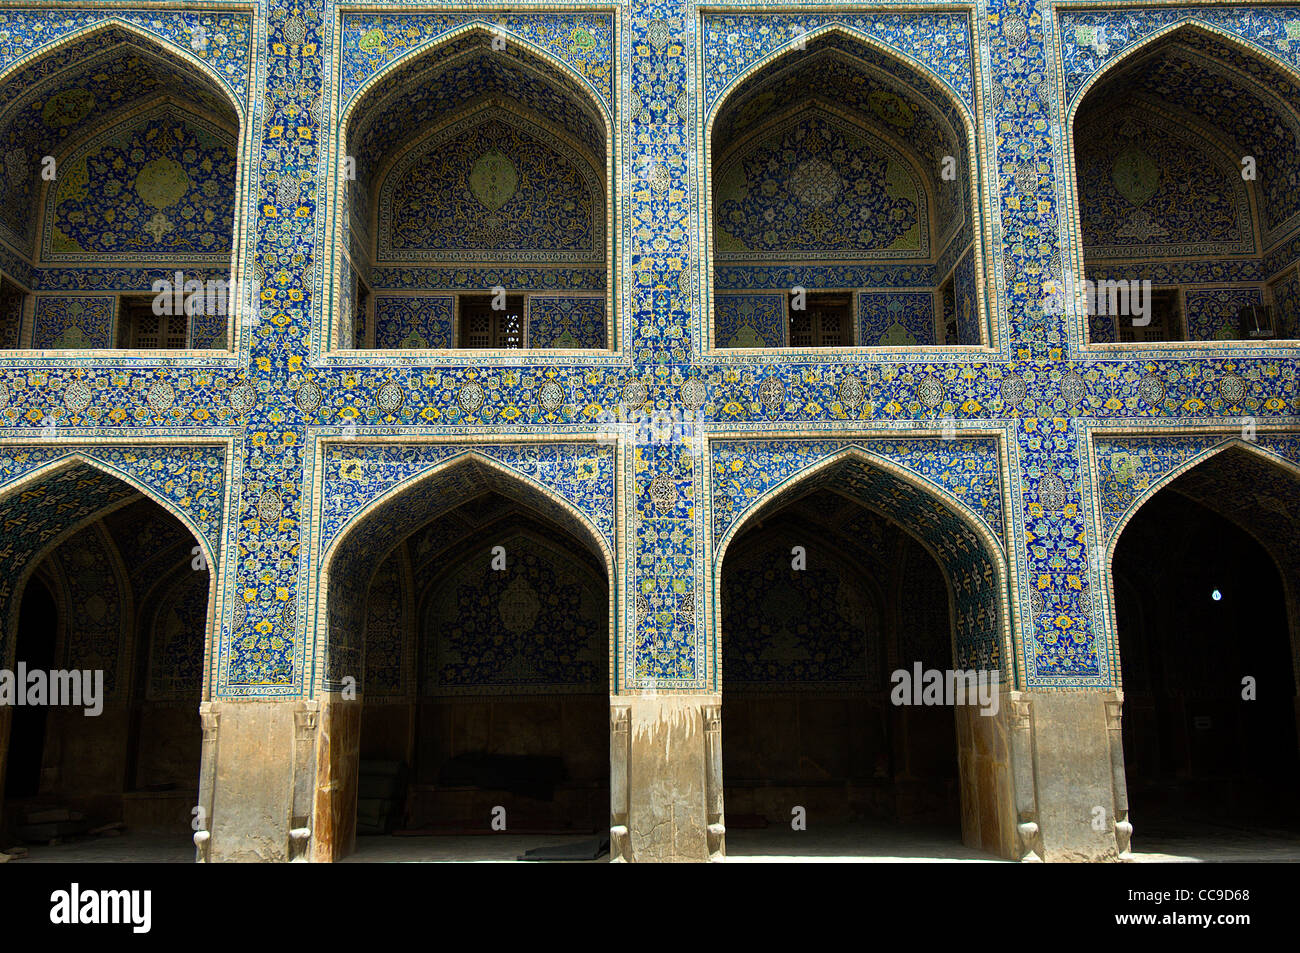 The main courtyard of the Imam Mosque in Isfahan, Iran, is surrounded by highly decorated two storey porches. - Stock Image